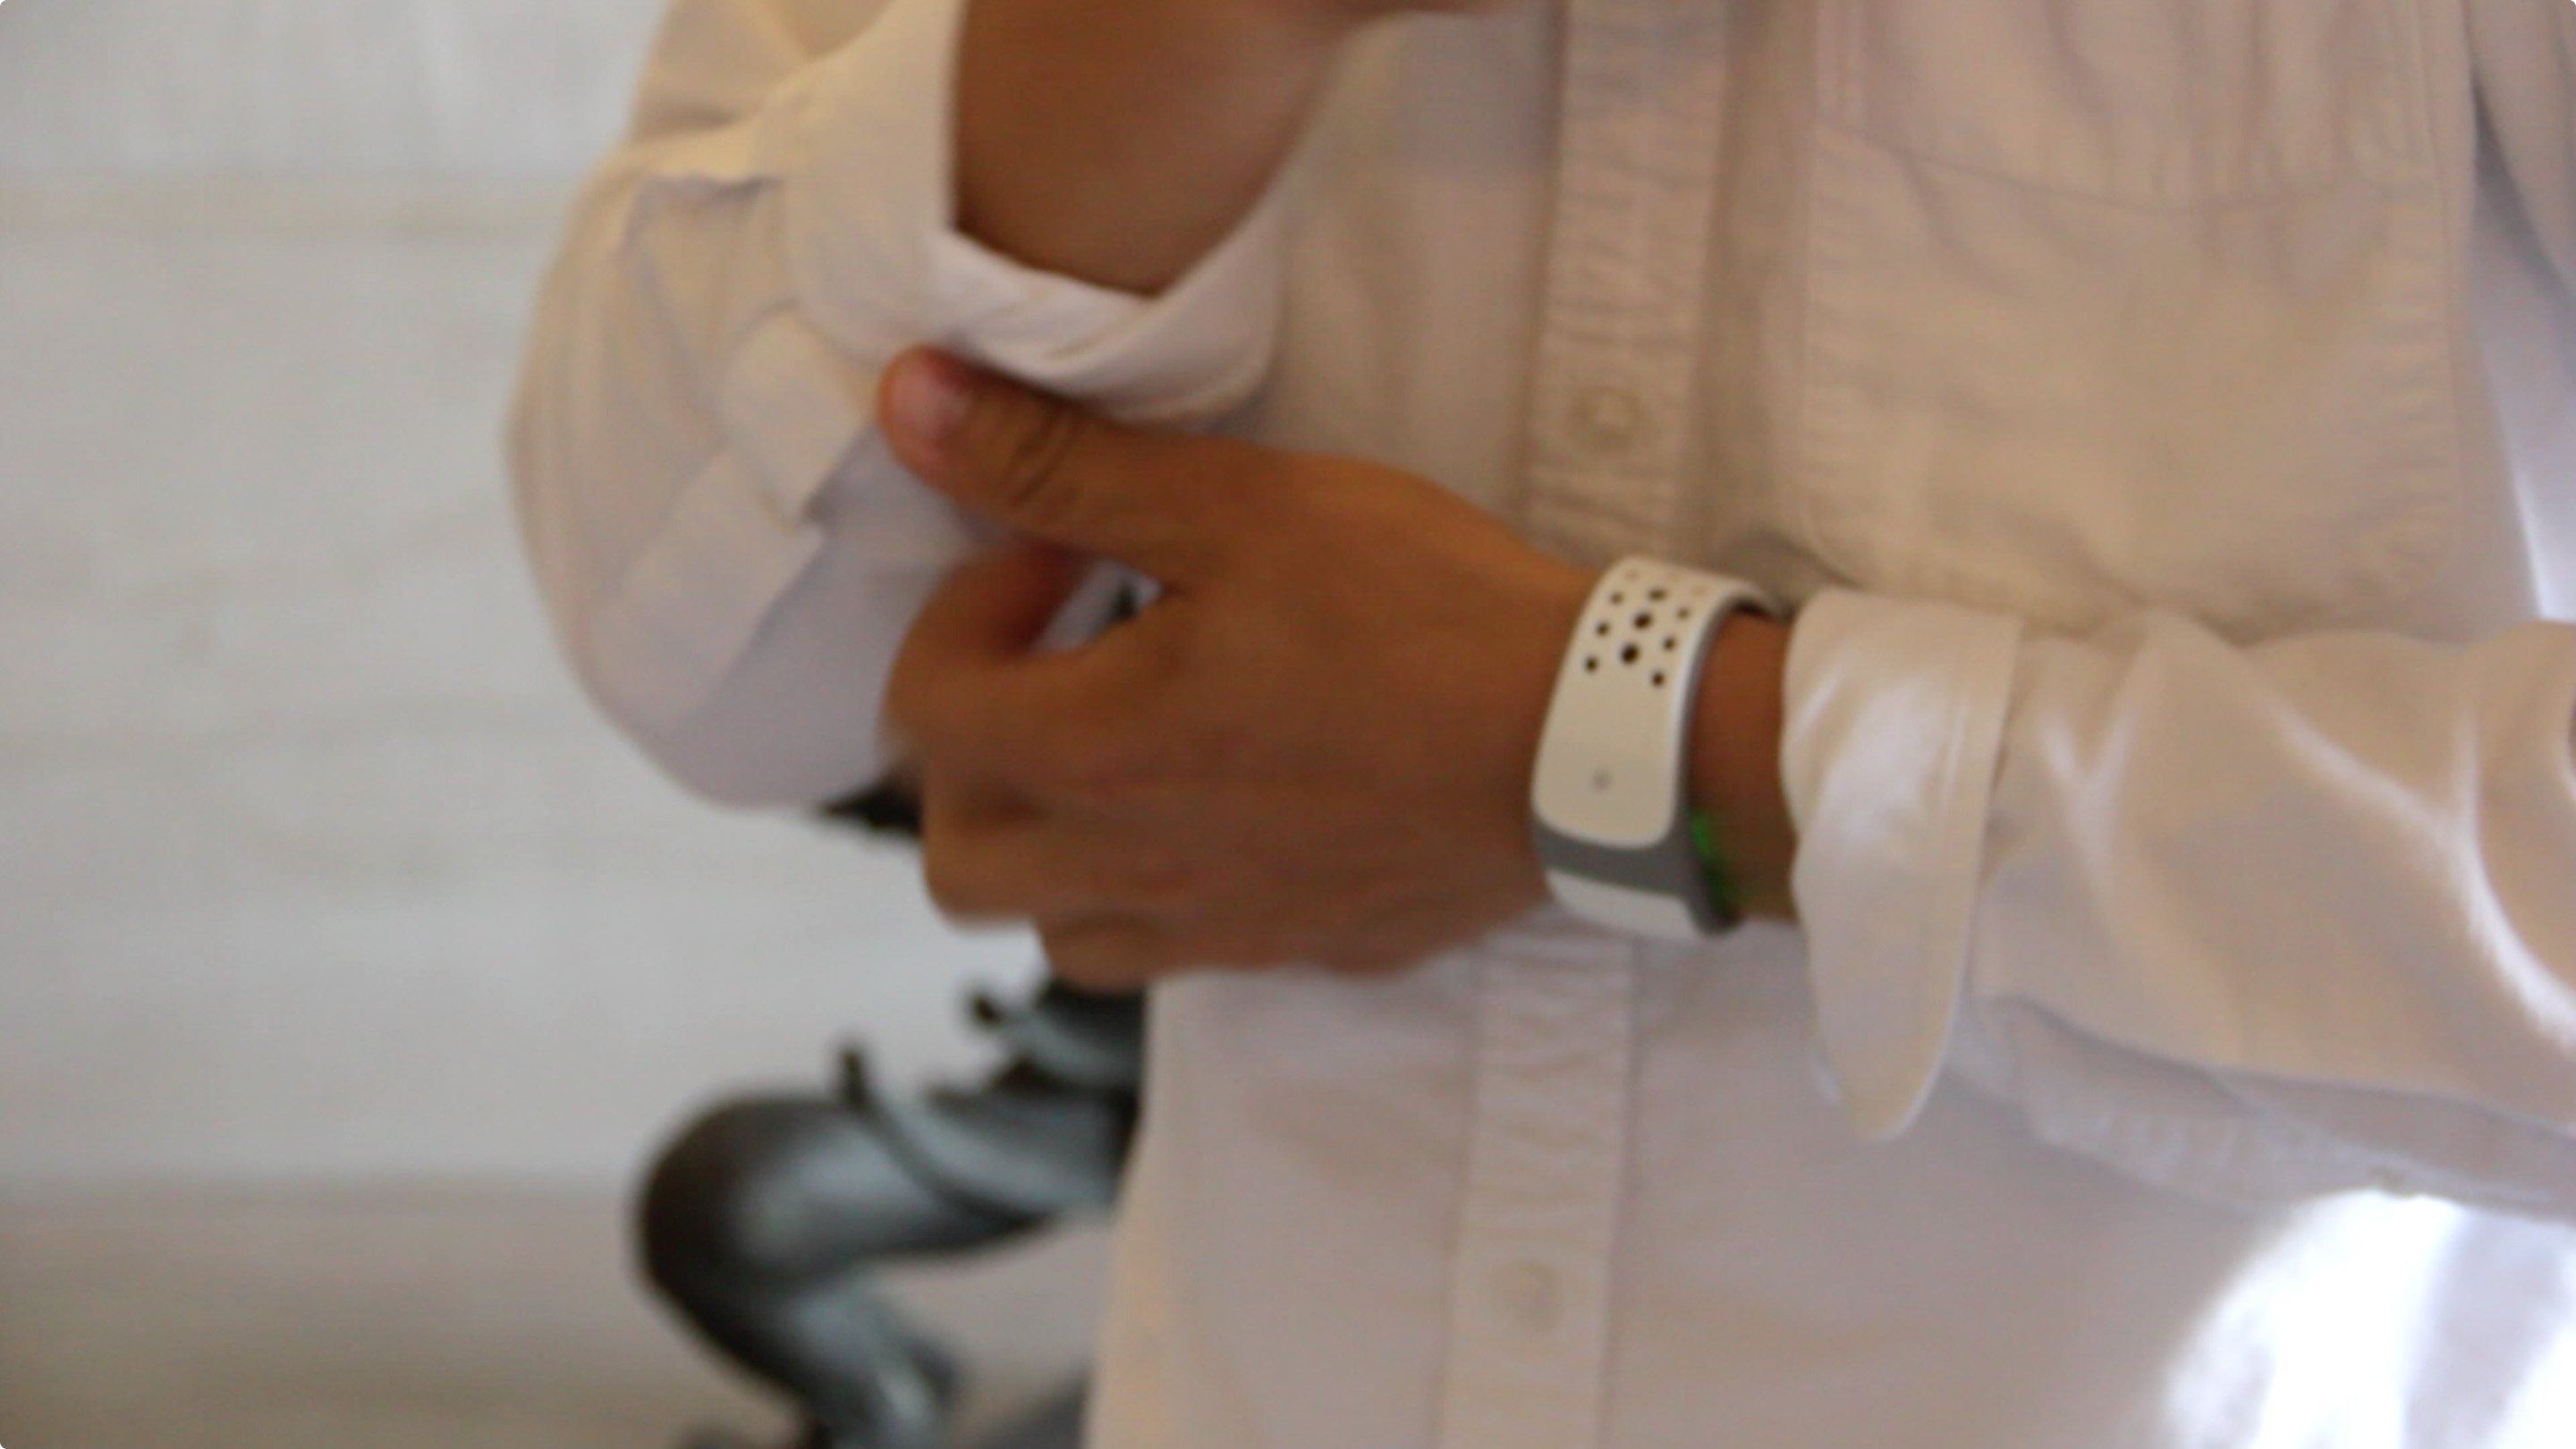 A test subject using the pplkpr heart-rate band, courtesy of the artists.